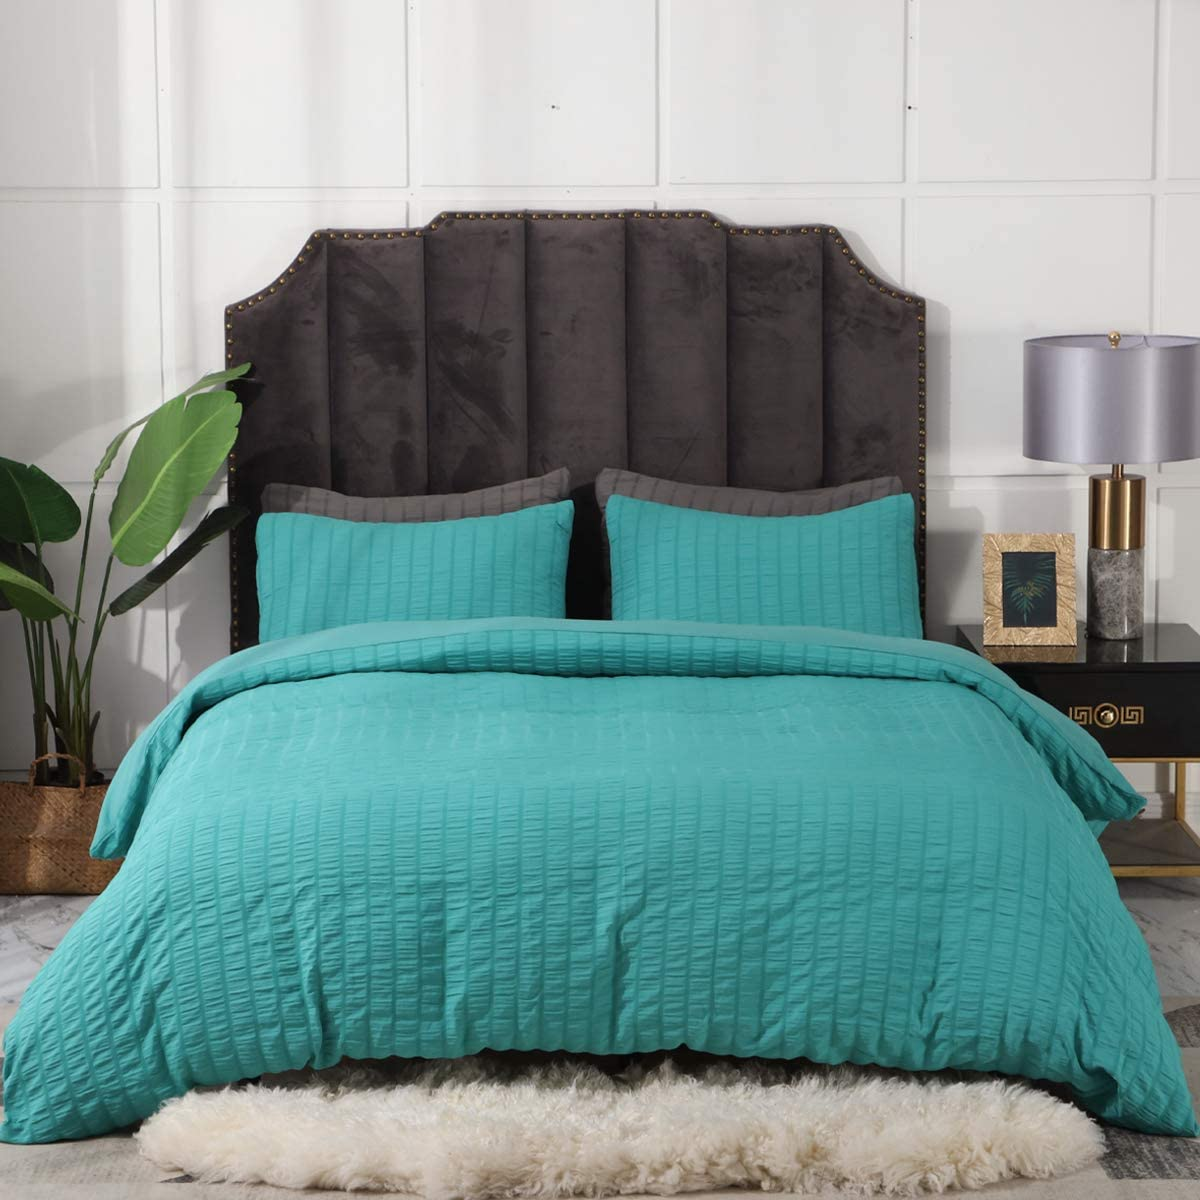 3 Pieces Teal Duvet Cover Set, Seersucker Textured Duvet Cover Set, Lightweight Soft Microfiber Duvet Cover Set, Hotel Quality Full Queen Bedding Set (Teal, Queen